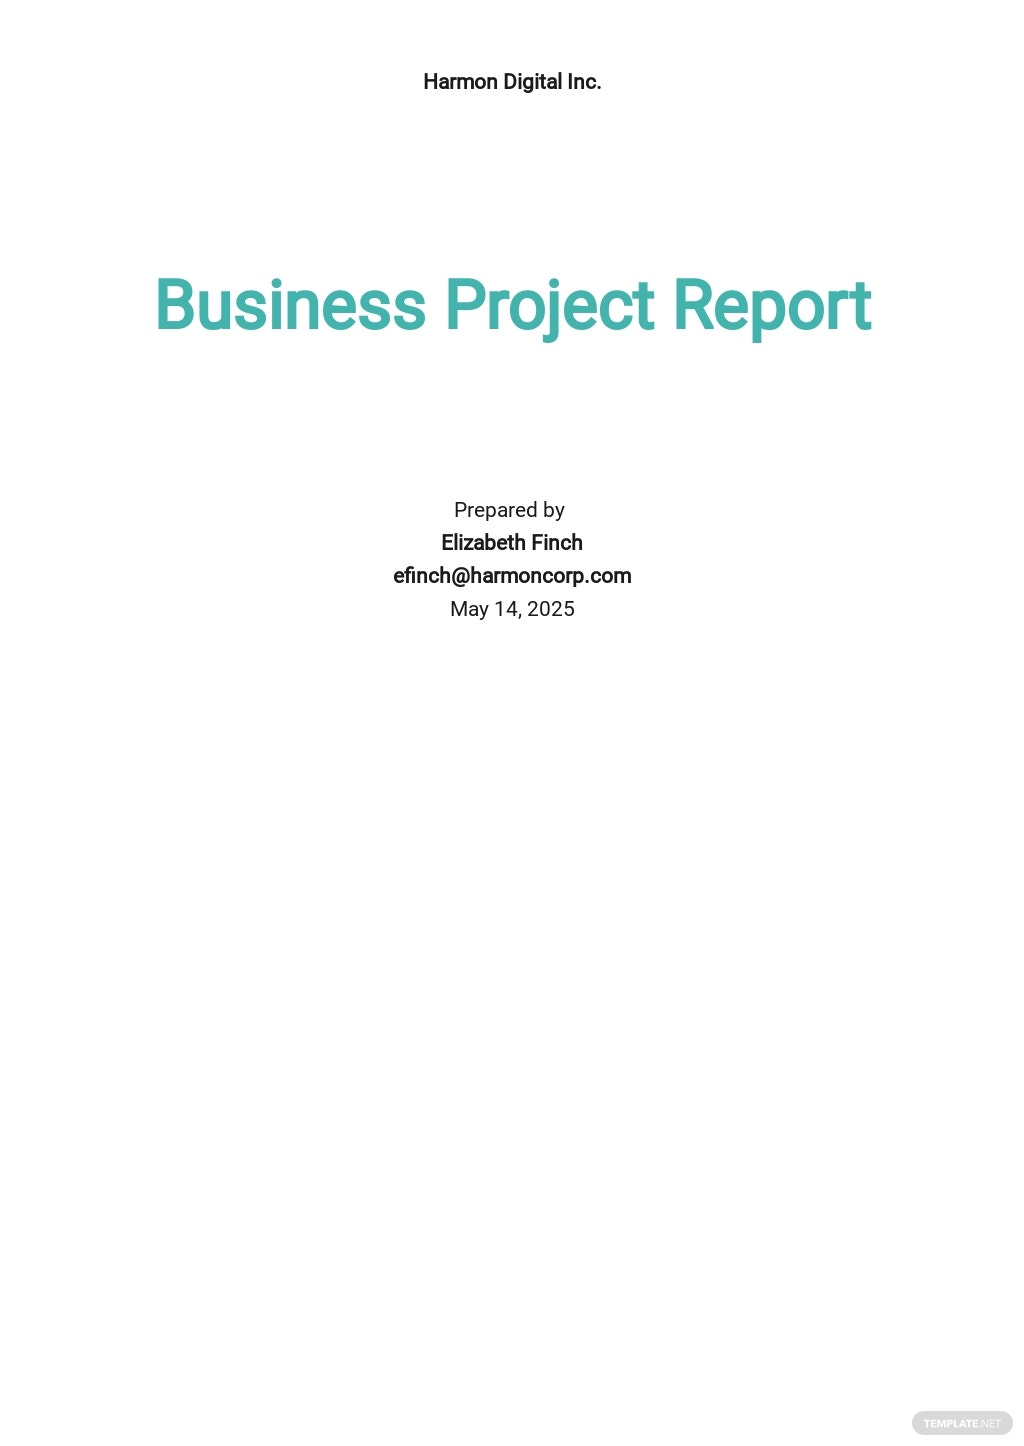 Business Project Report Template.jpe